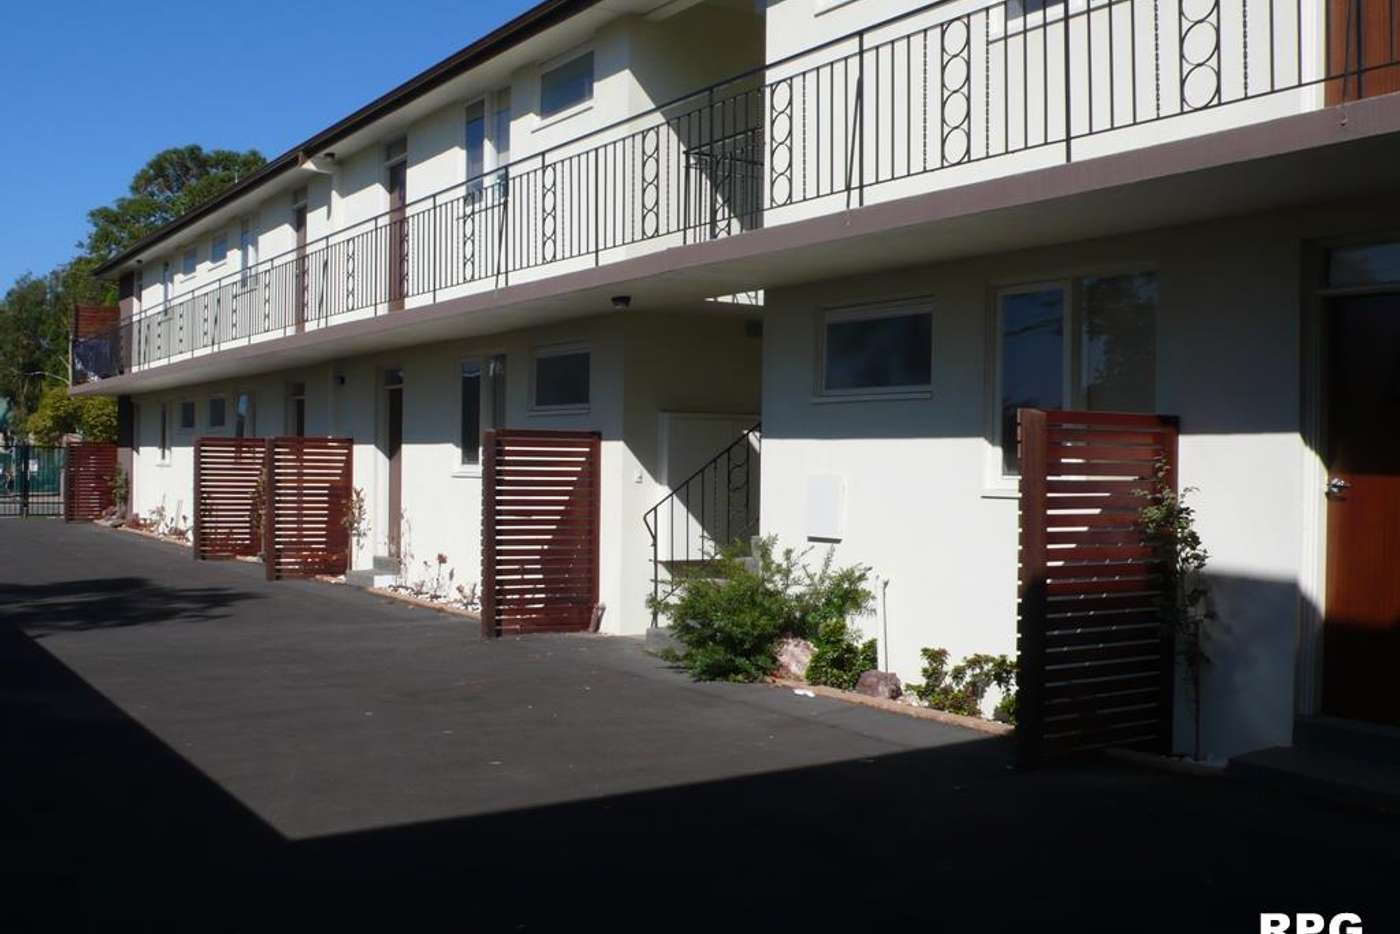 Main view of Homely apartment listing, 10/77 Edgar St North, Glen Iris VIC 3146